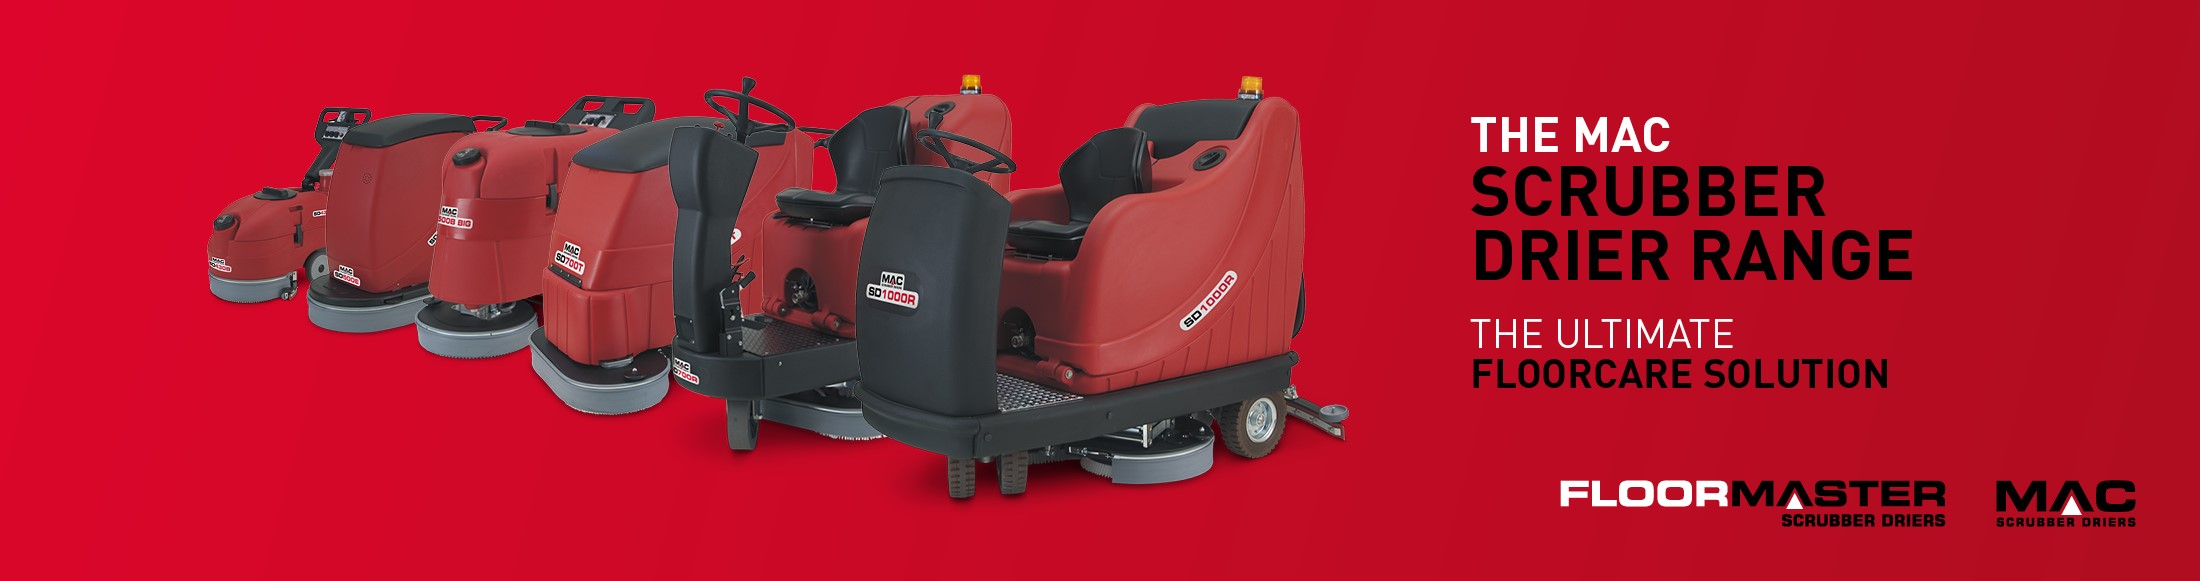 The MAC Scrubber Drier Range - The ultimate floorcare solution